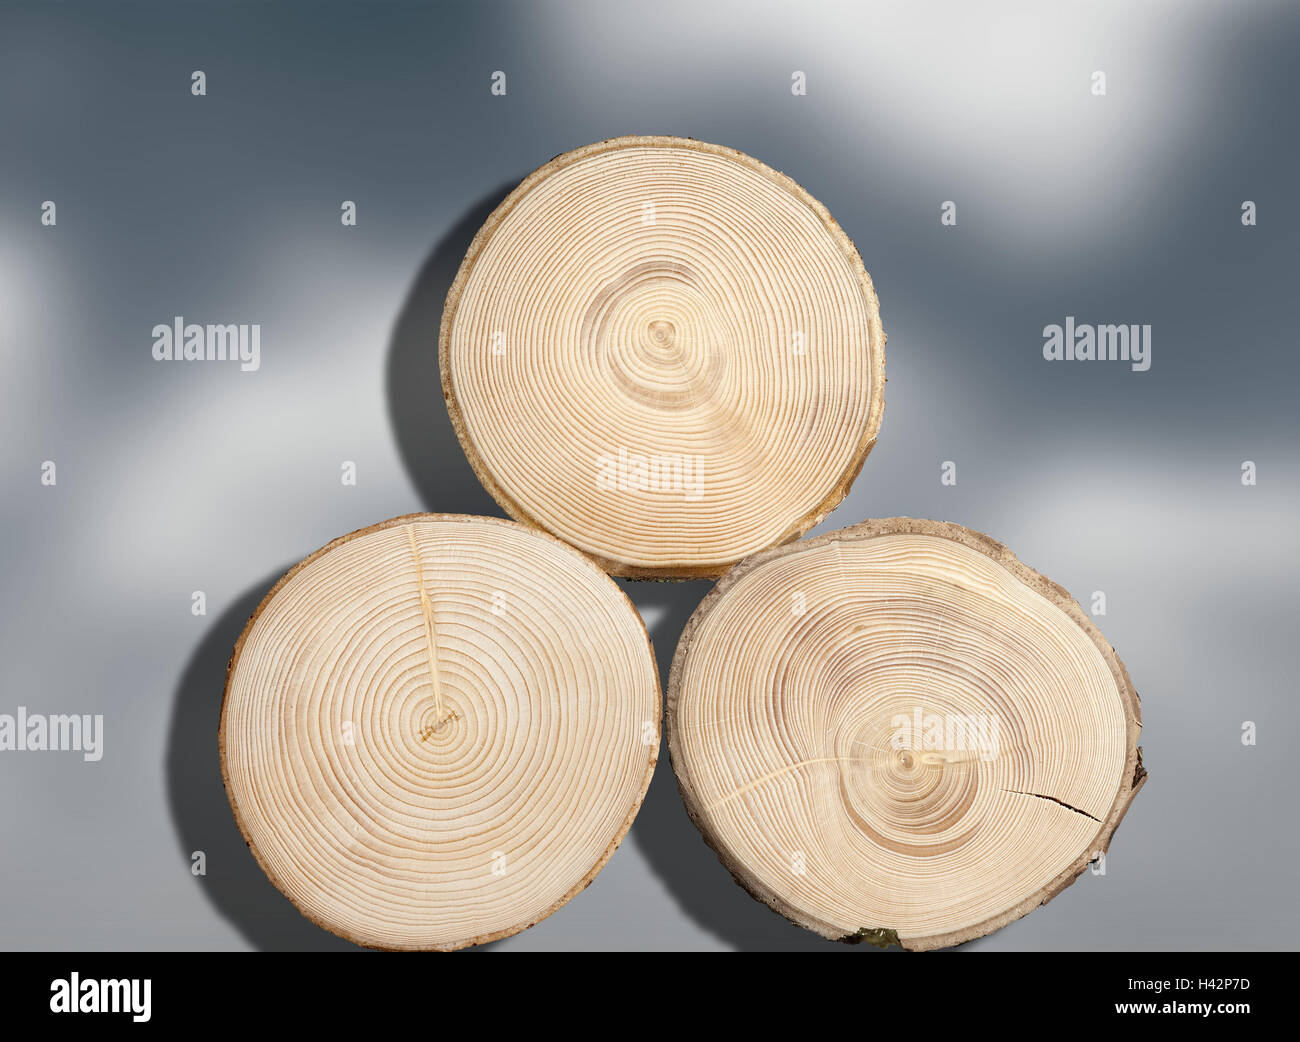 Trunks, three, cross-sectional areas, spruces, trees, strains, cross section, wooden, sample, structure, tree-rings, - Stock Image